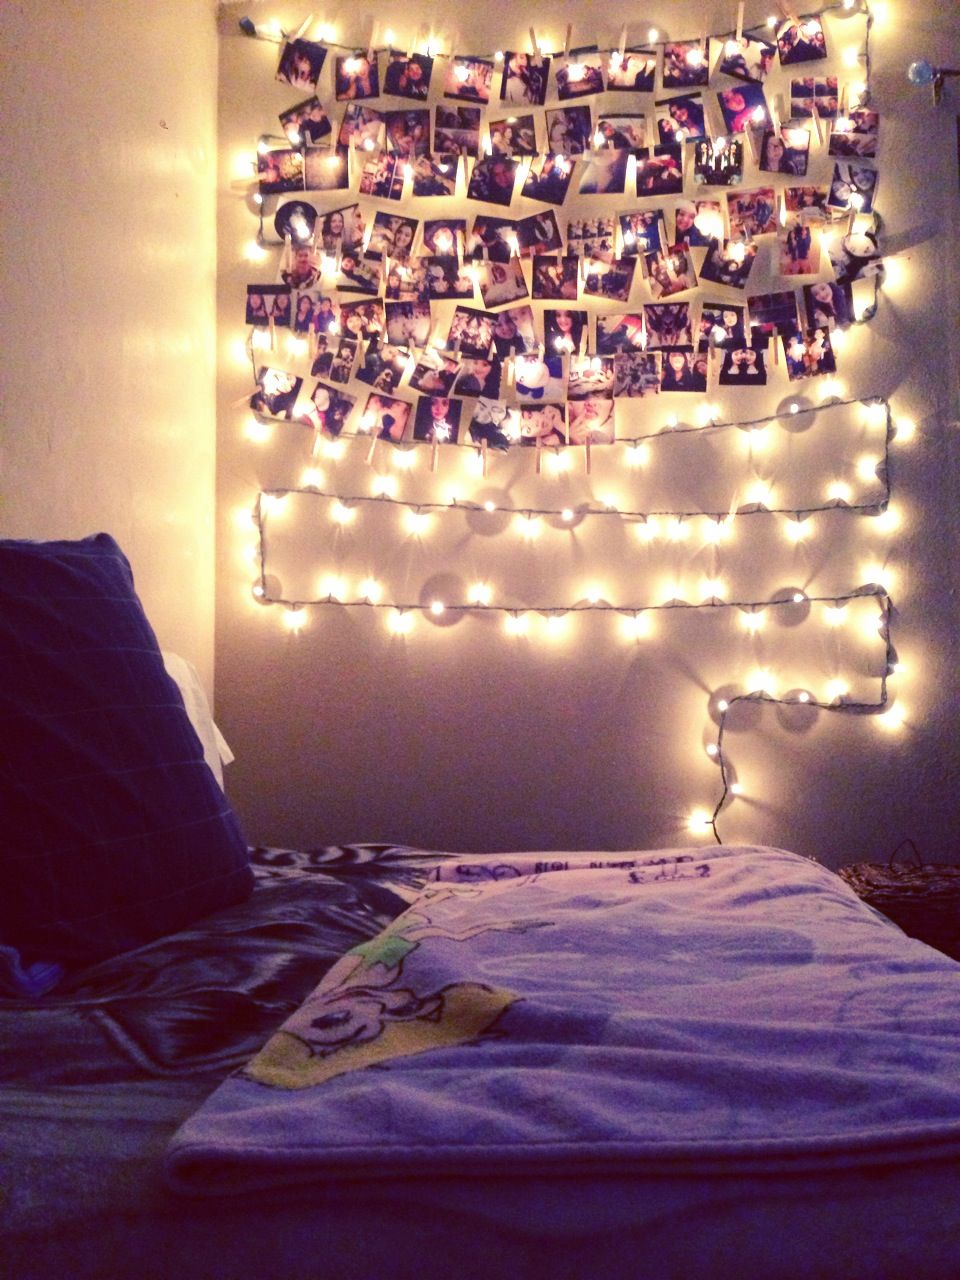 Purple christmas lights bedroom - My Wall In My Room Christmas Lights Photographs And Clothespins